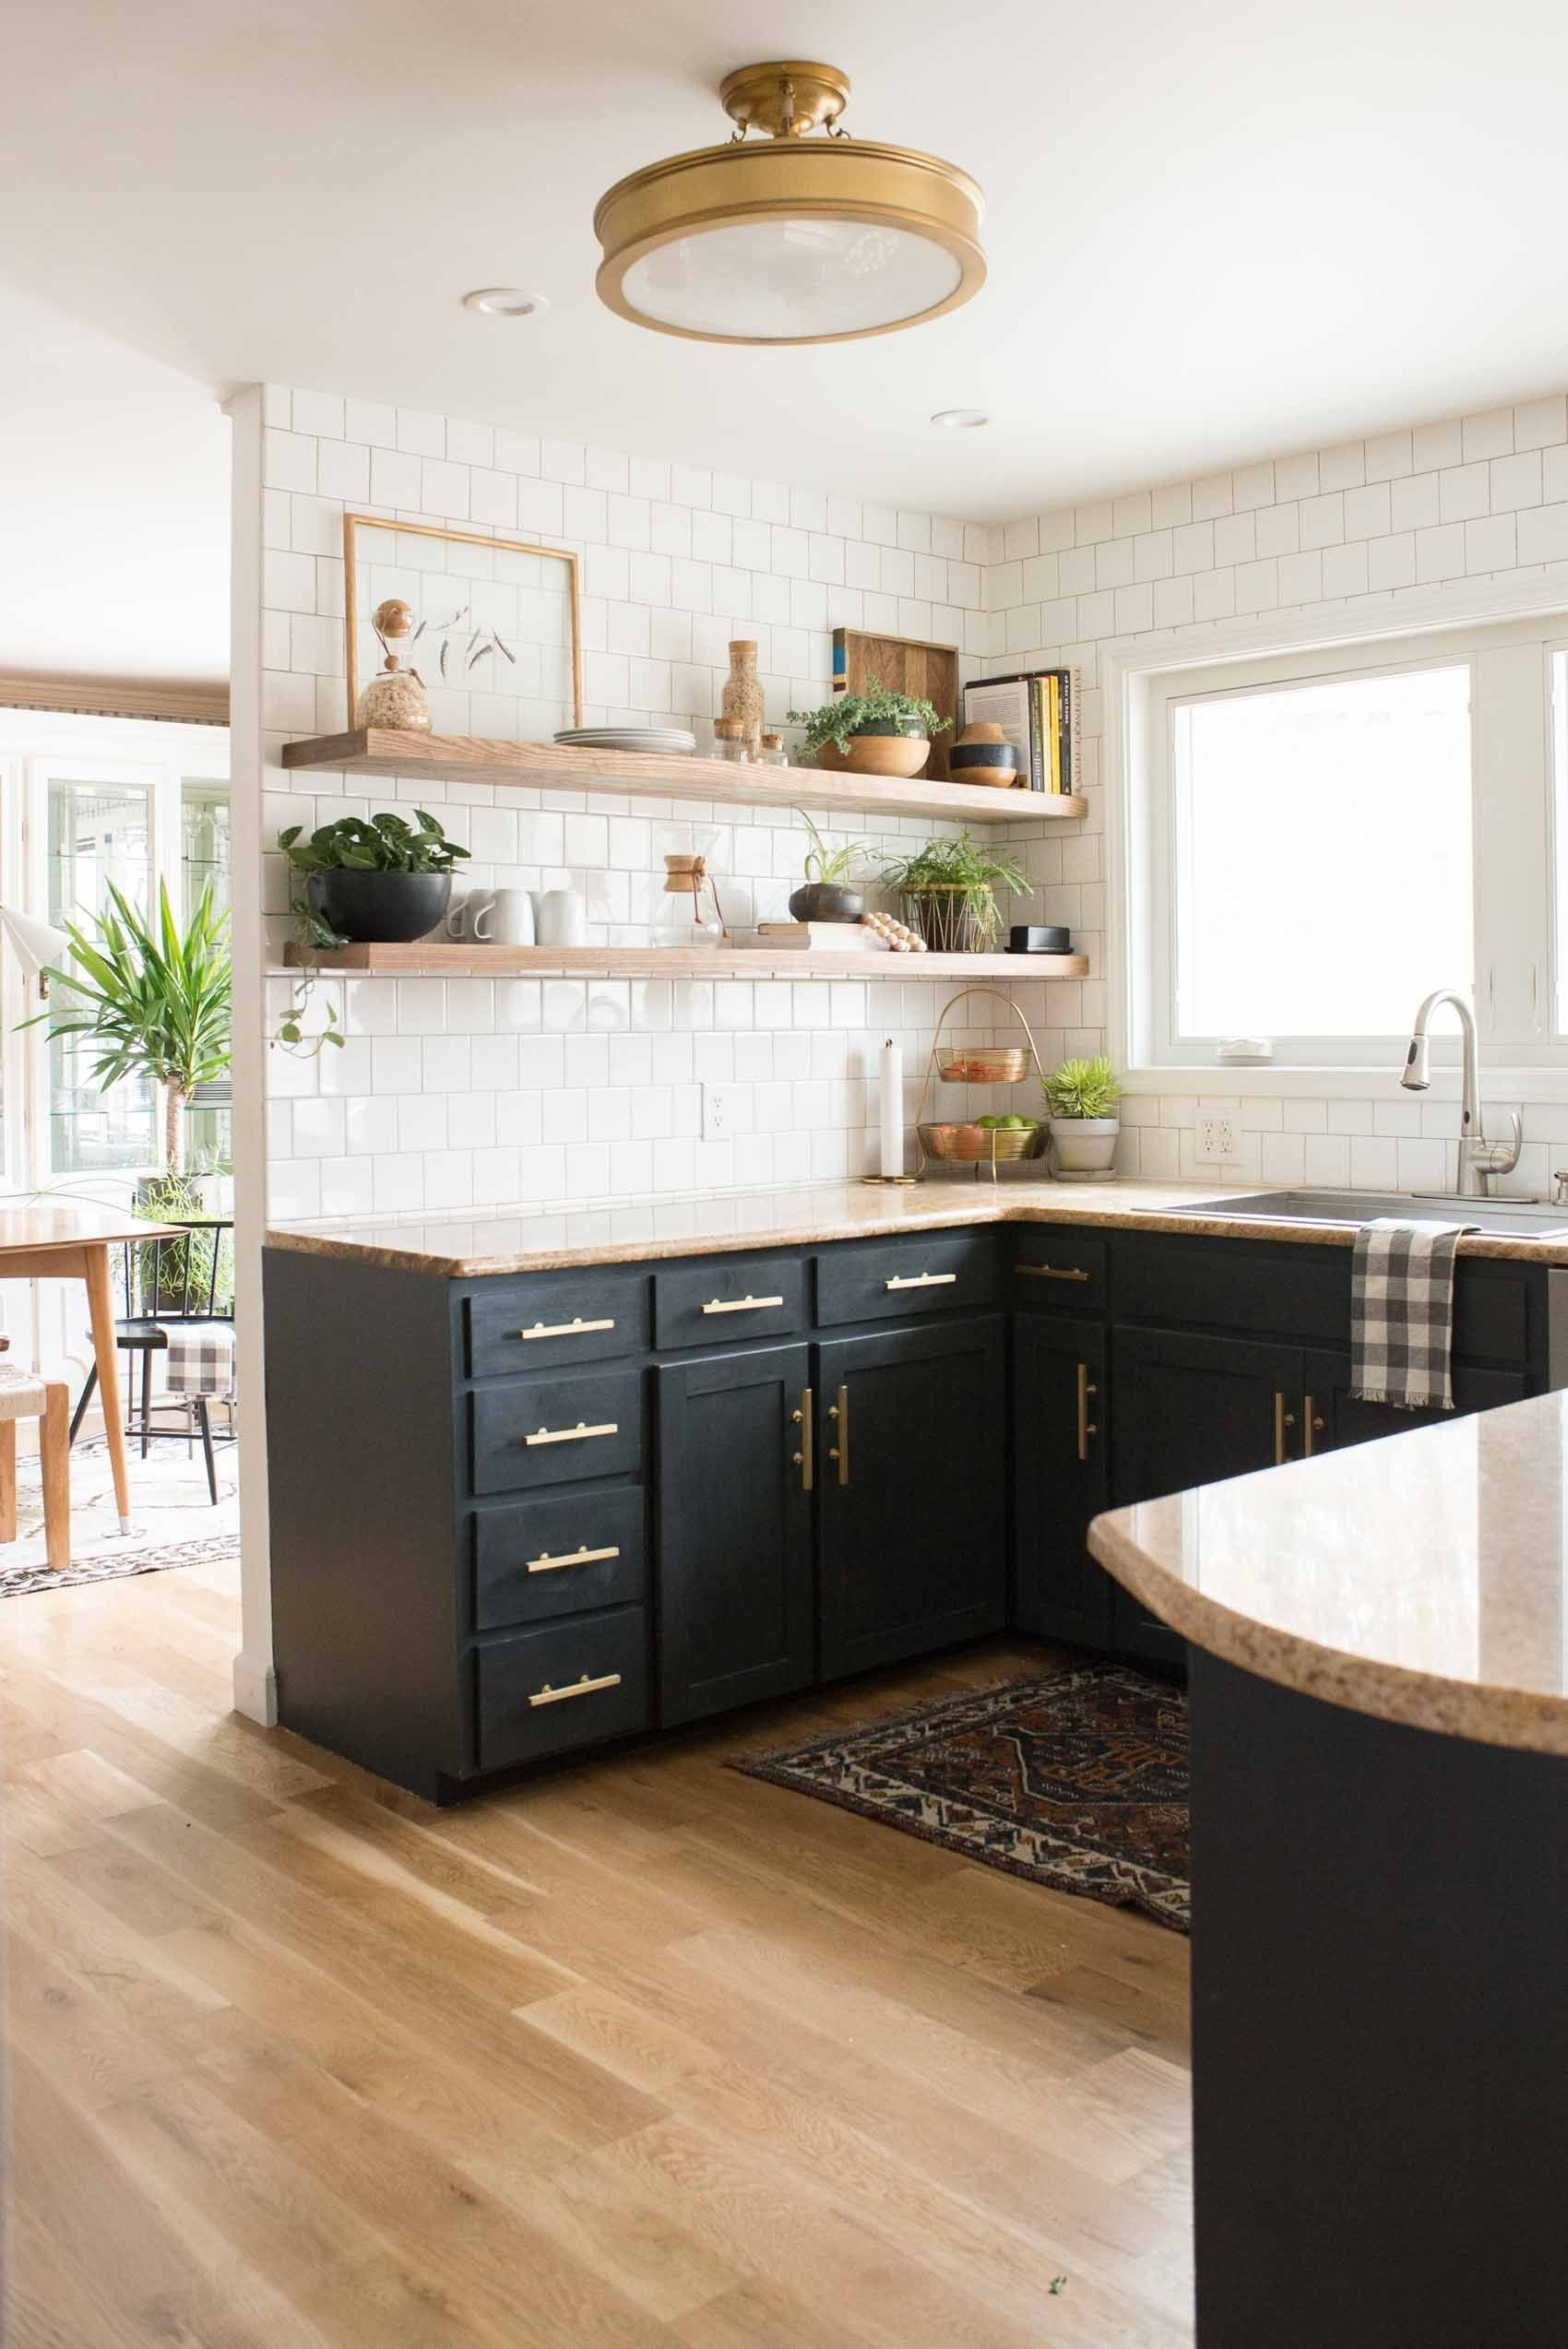 Impressive Kitchen Makeover Ideas On A Budget04 - TOPARCHITECTURE